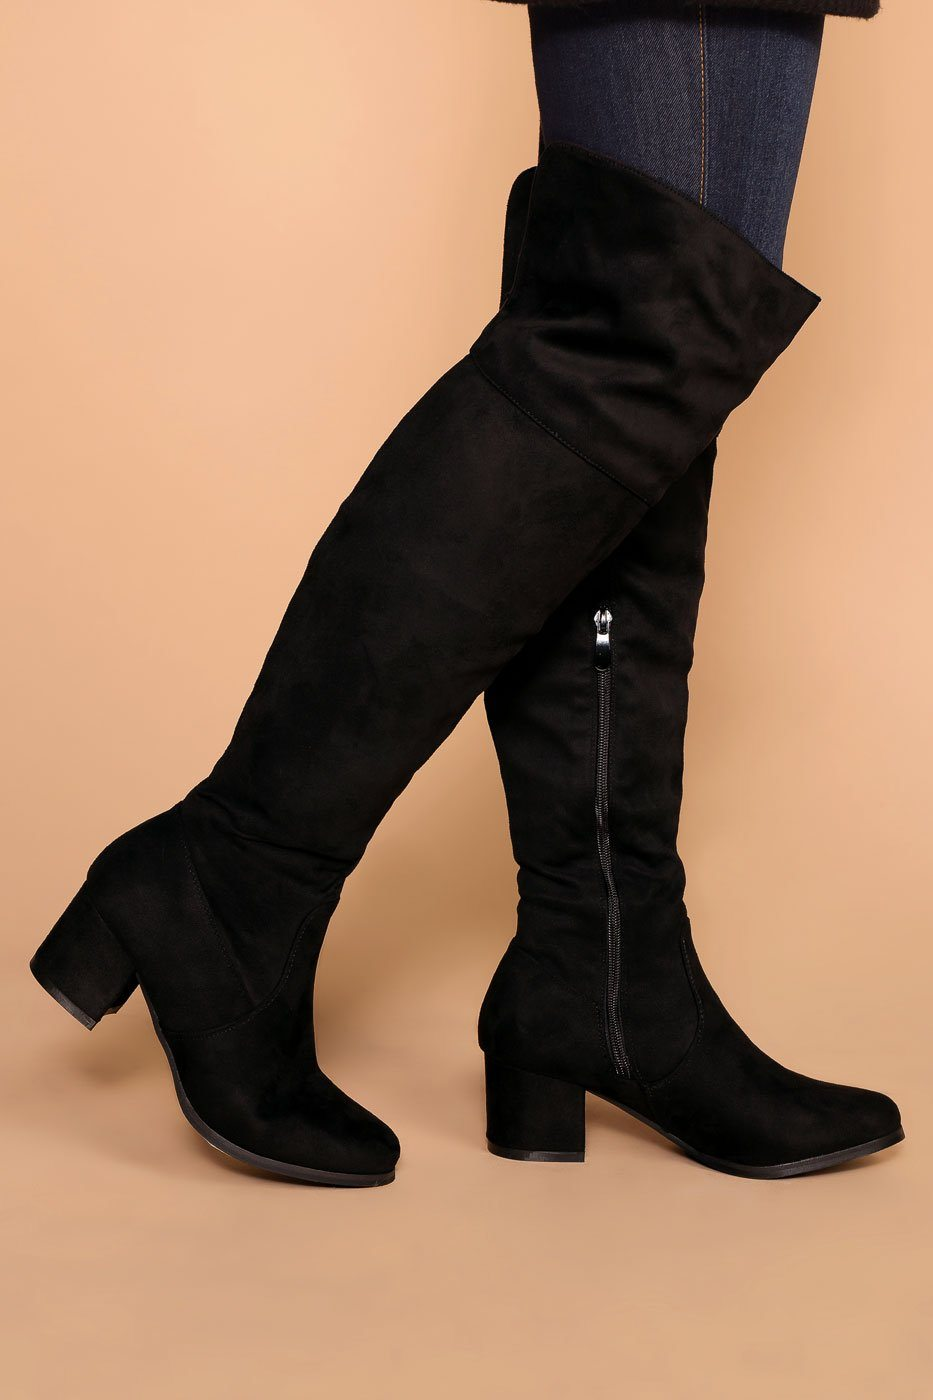 371741baa805 ... Dublin Black Block Heel Over The Knee Boots | Shop Priceless ...